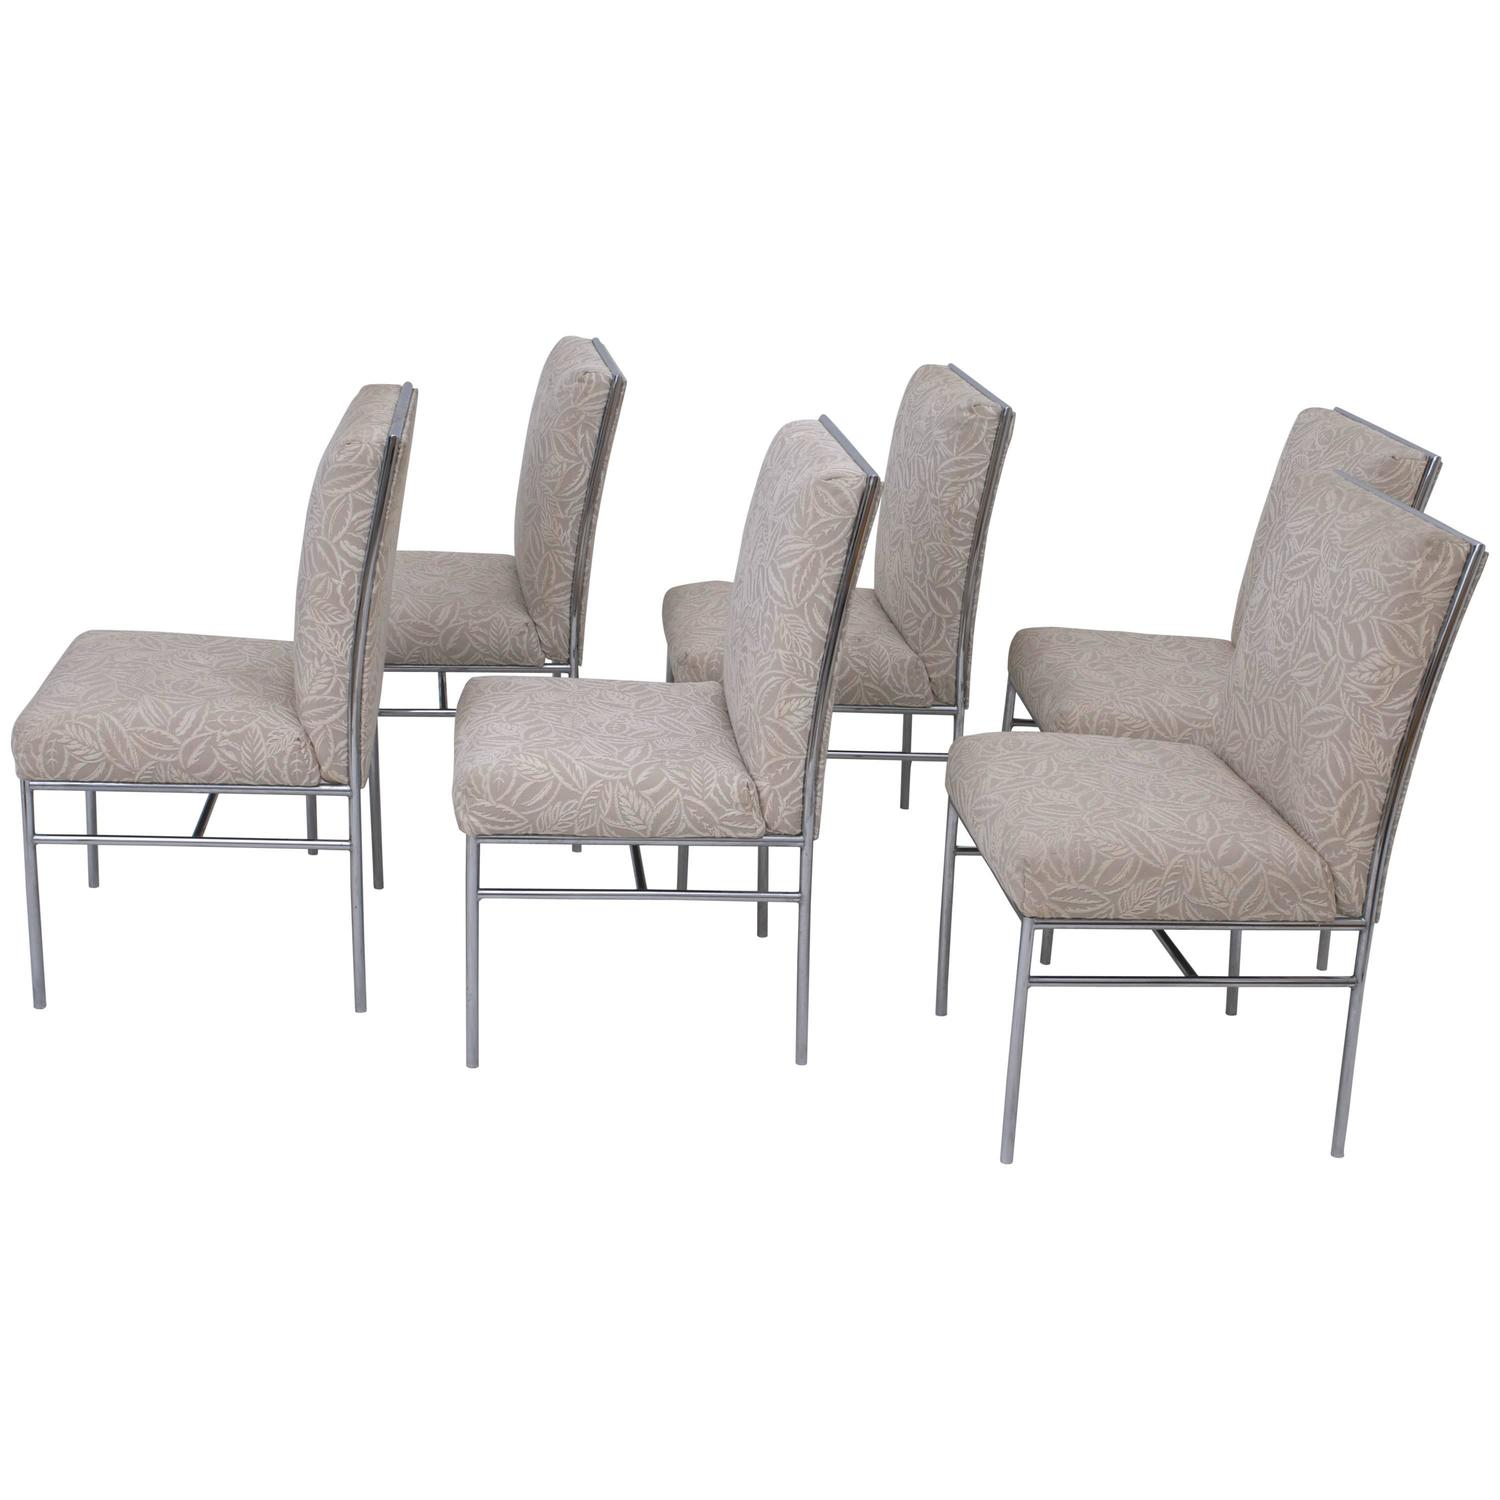 Fabric Dining Chairs For Sale Popular Fabric Commercial  : 3921852z from honansantiques.com size 1500 x 1500 jpeg 93kB